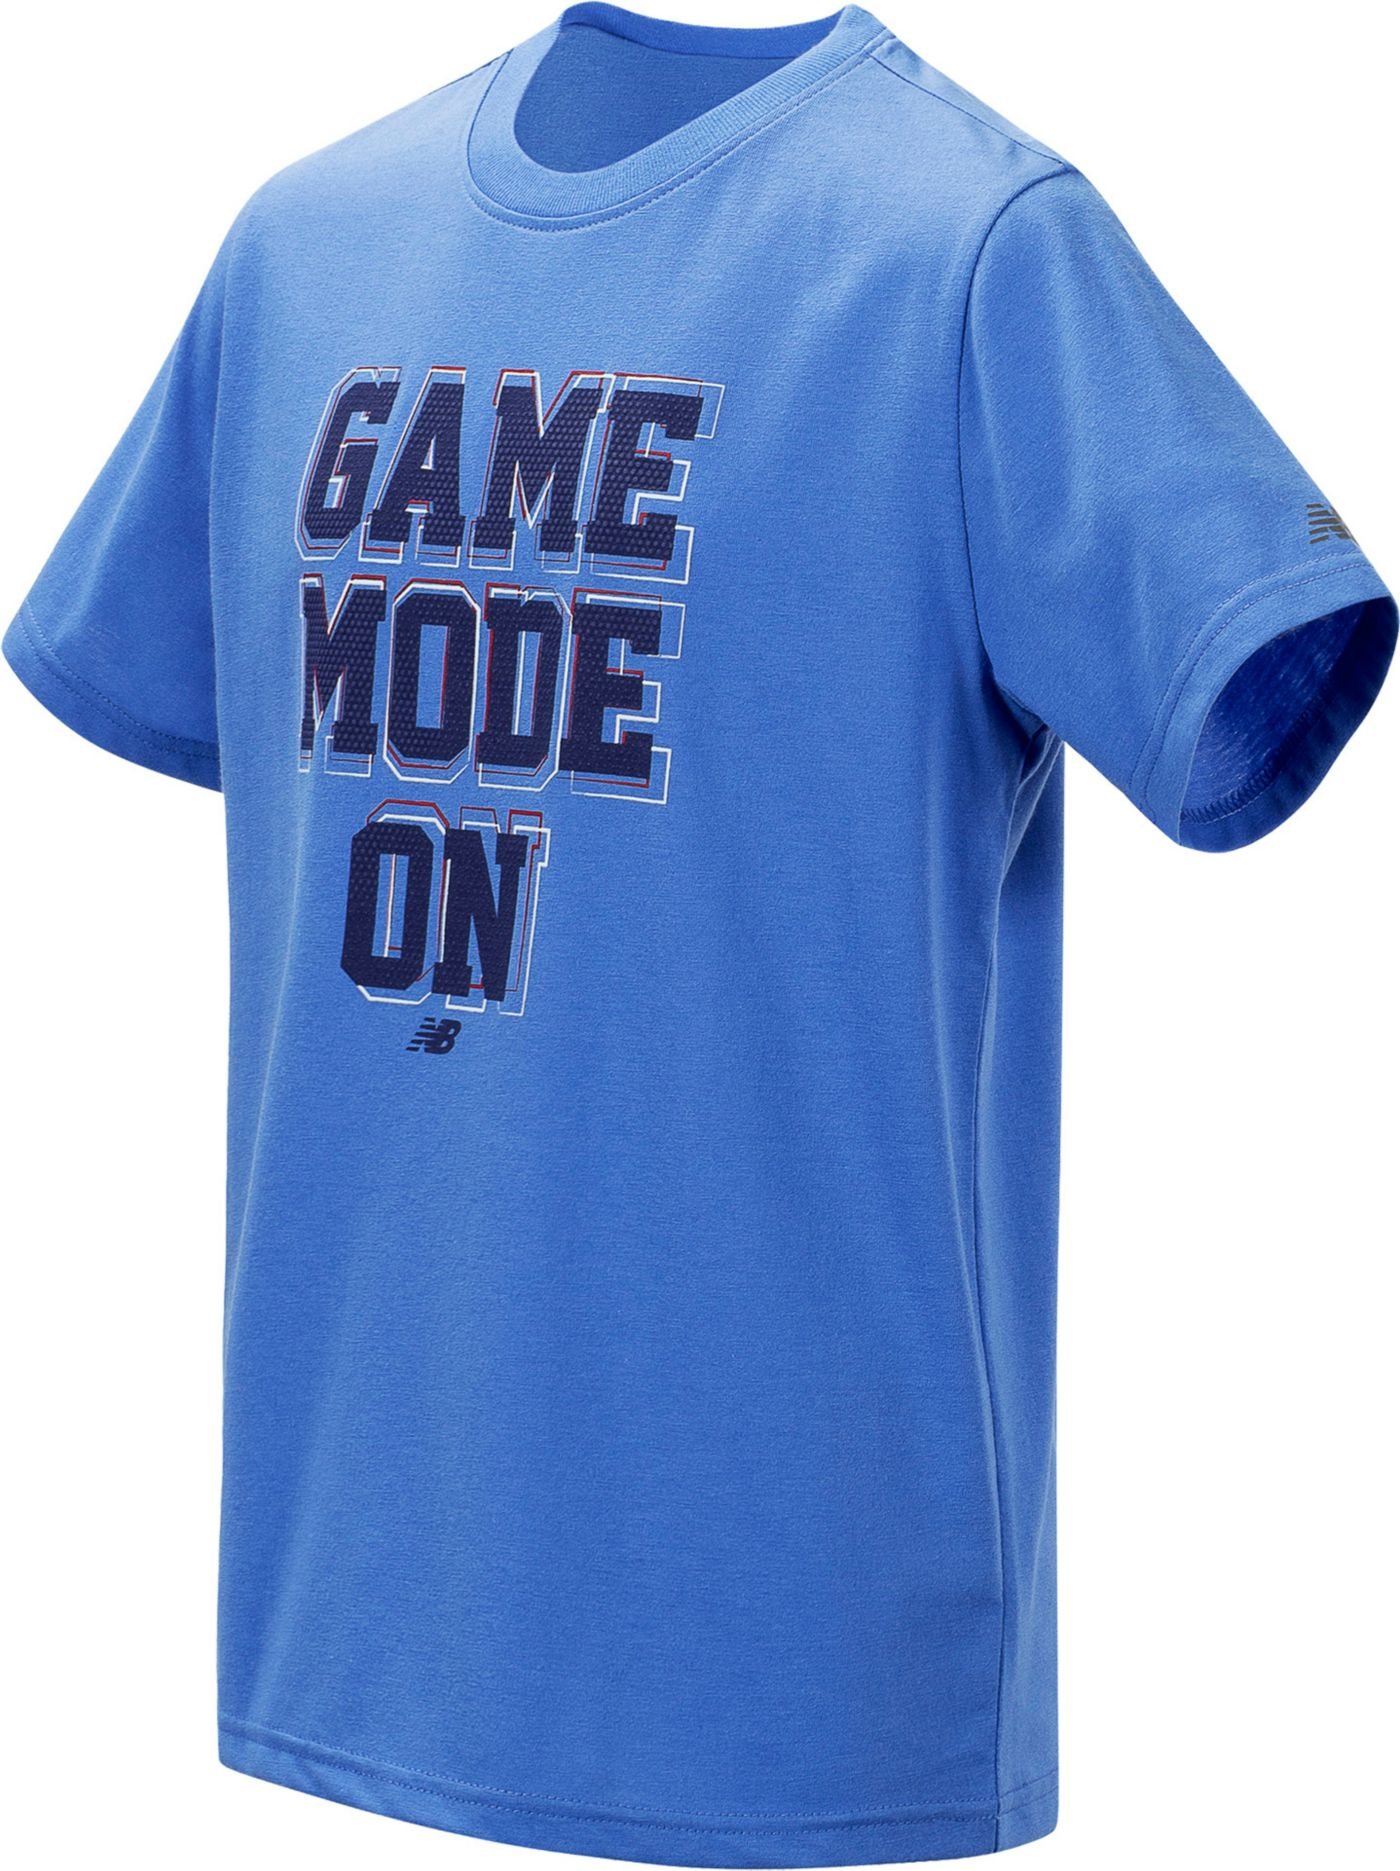 New Balance Little Boys' Game On Mode Graphic T-Shirt